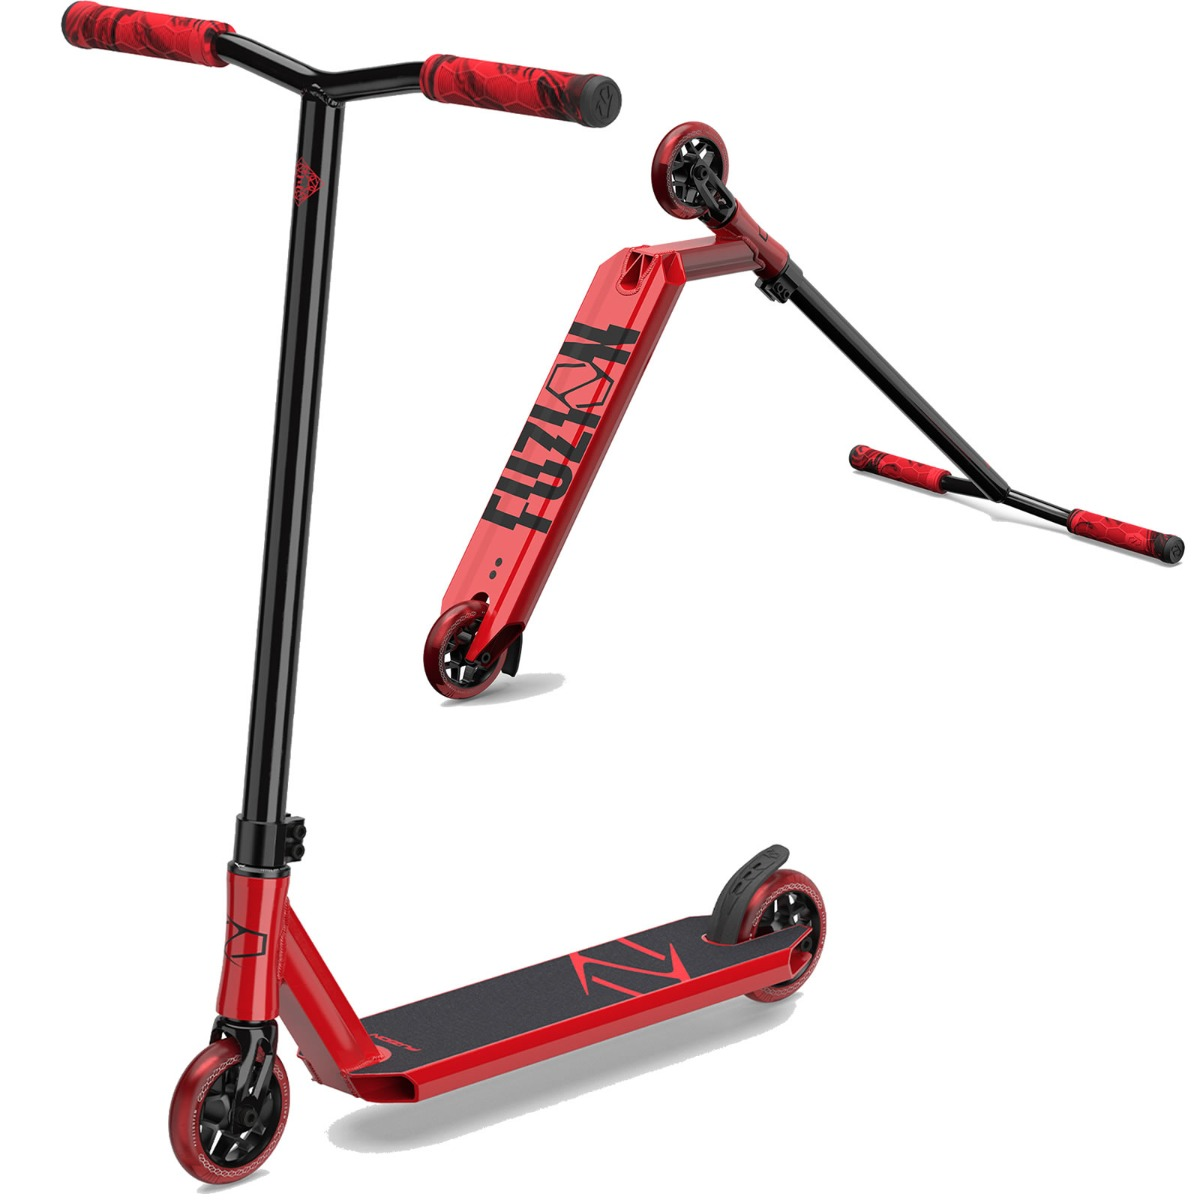 An image of Fuzion Z250 2021 Complete Stunt Scooter - Red